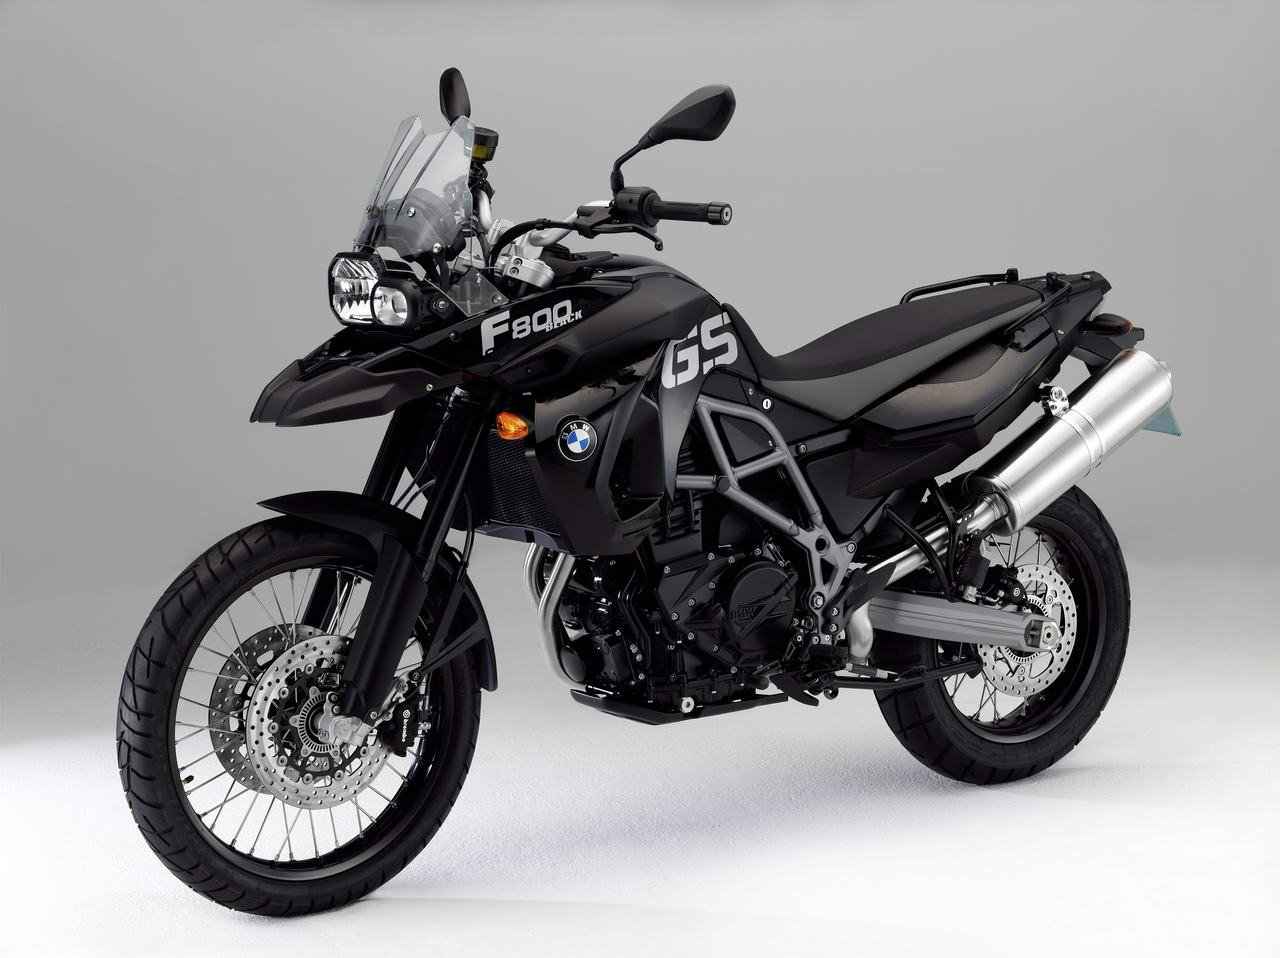 bmw f800 gs italy motorcycle rental scooters. Black Bedroom Furniture Sets. Home Design Ideas